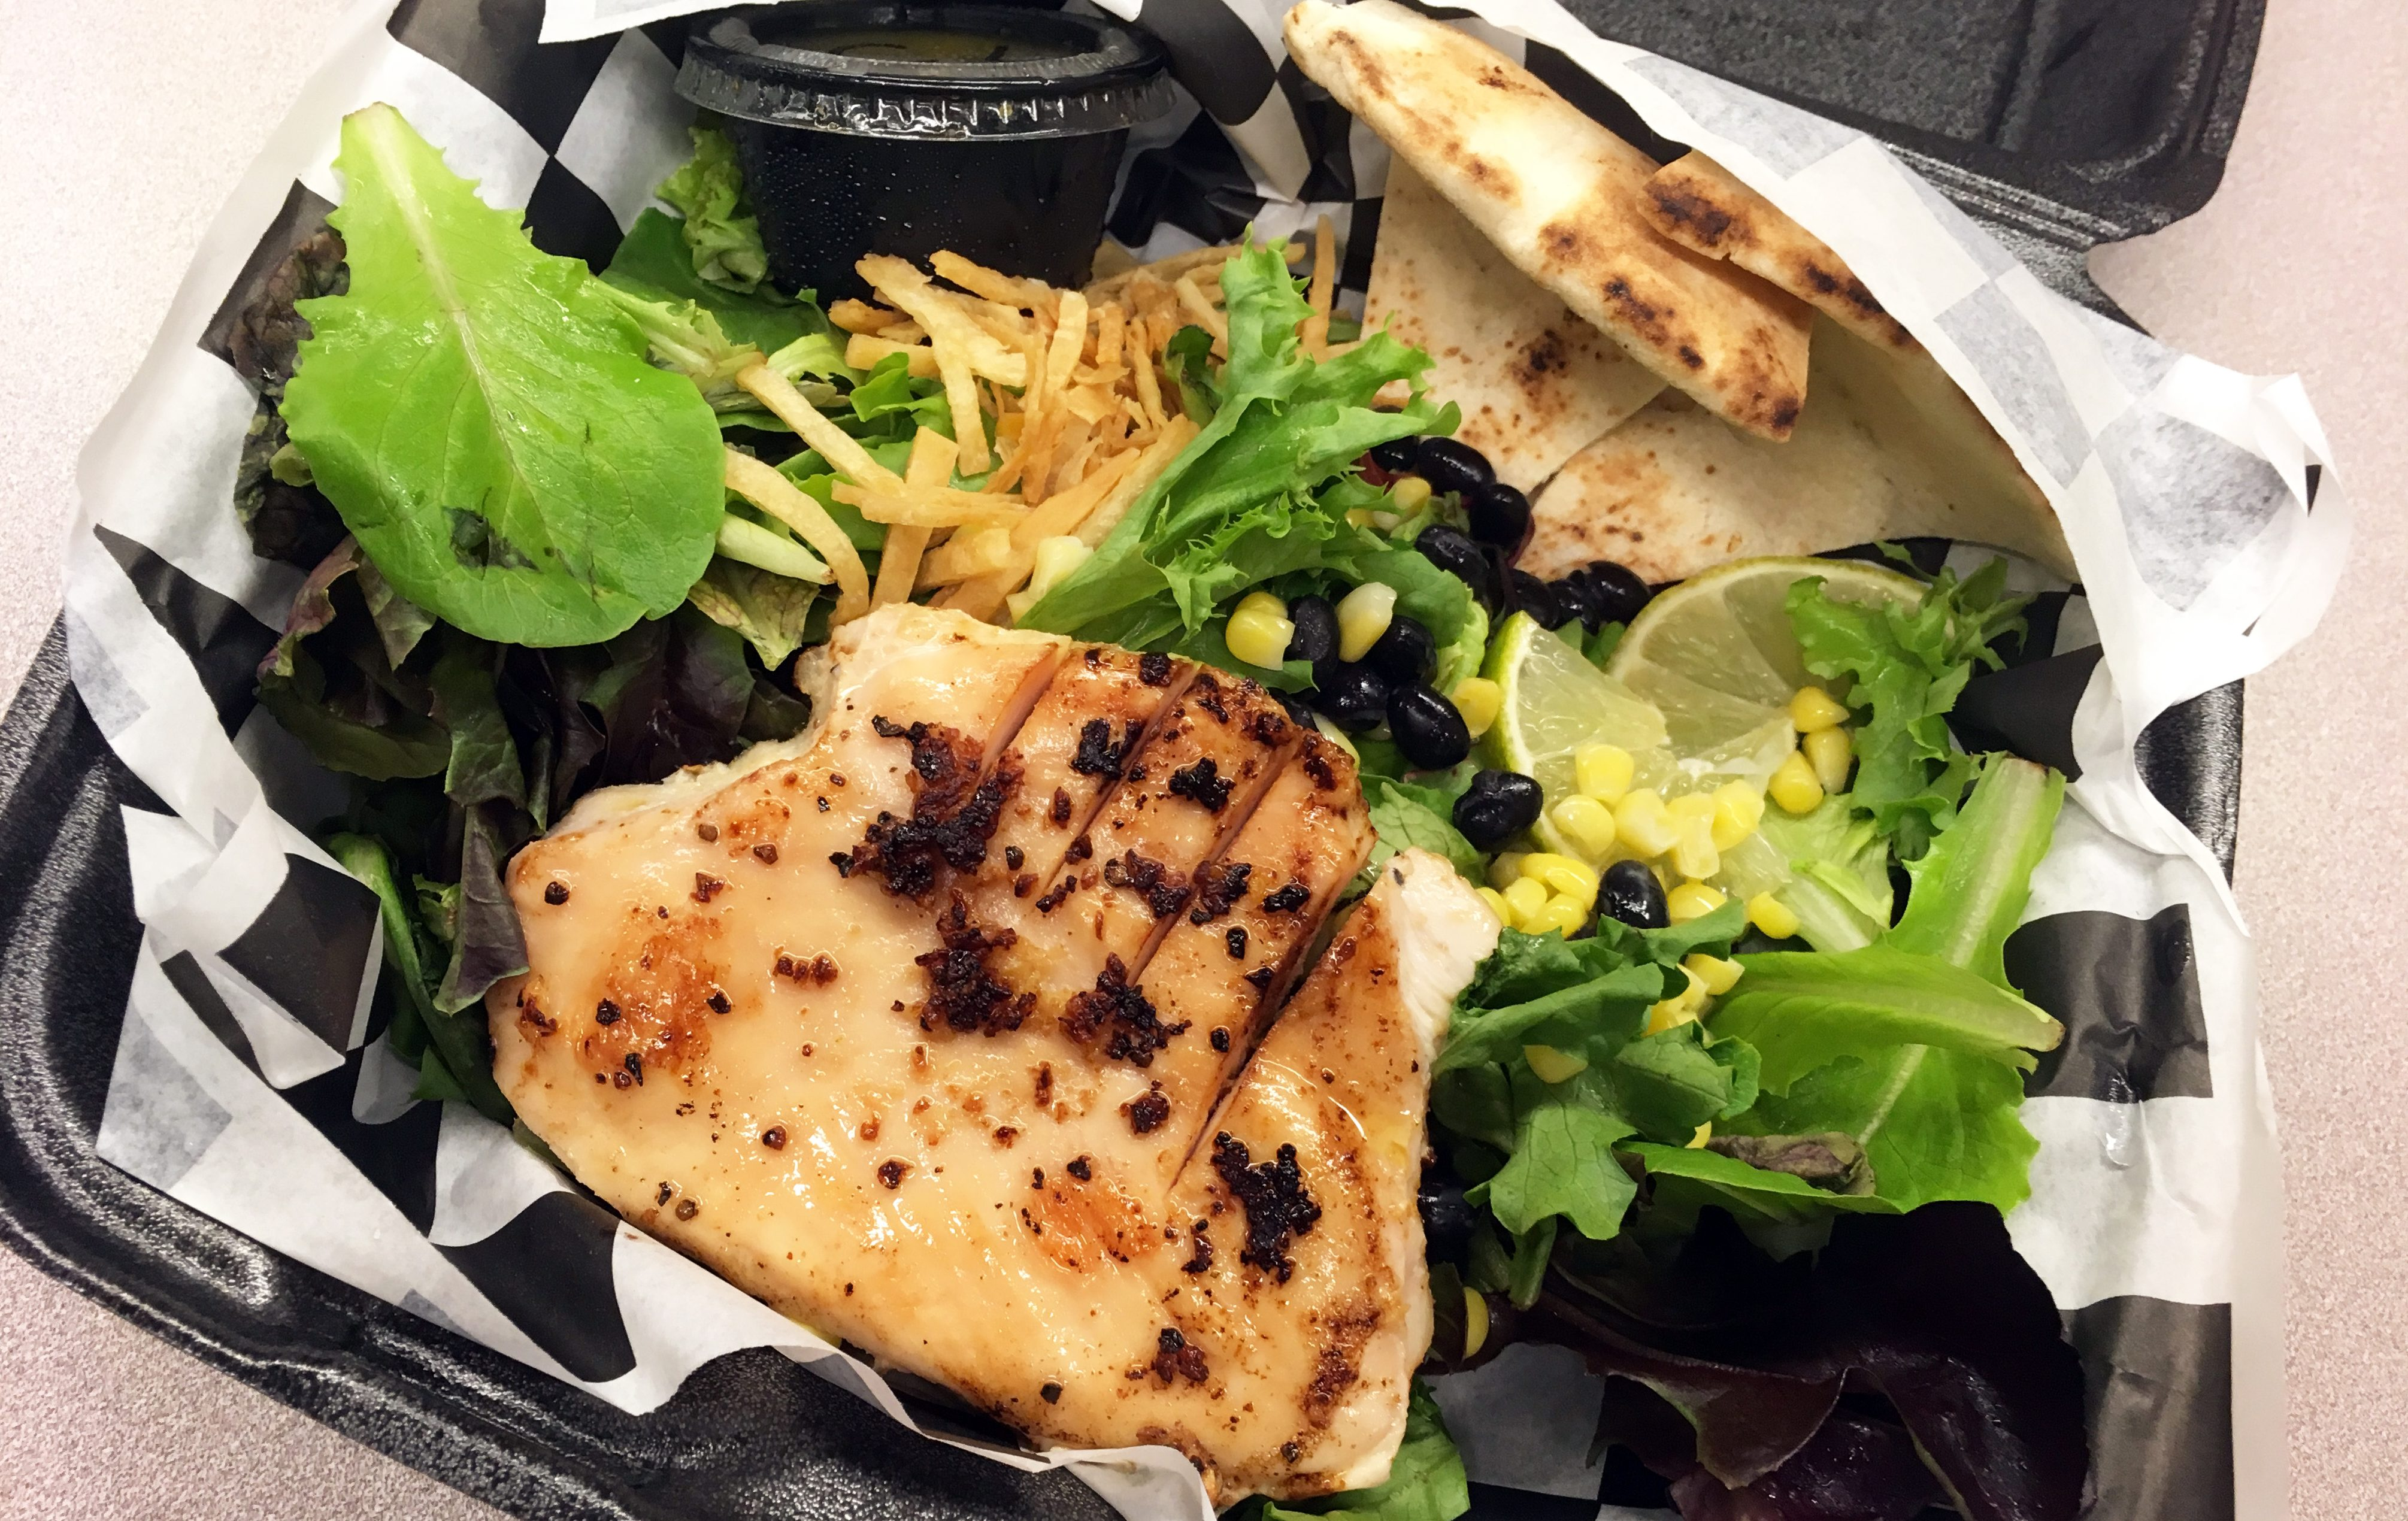 Cucina Povera Salad Tap Click Eat To Get Food At Home The Buffalo News